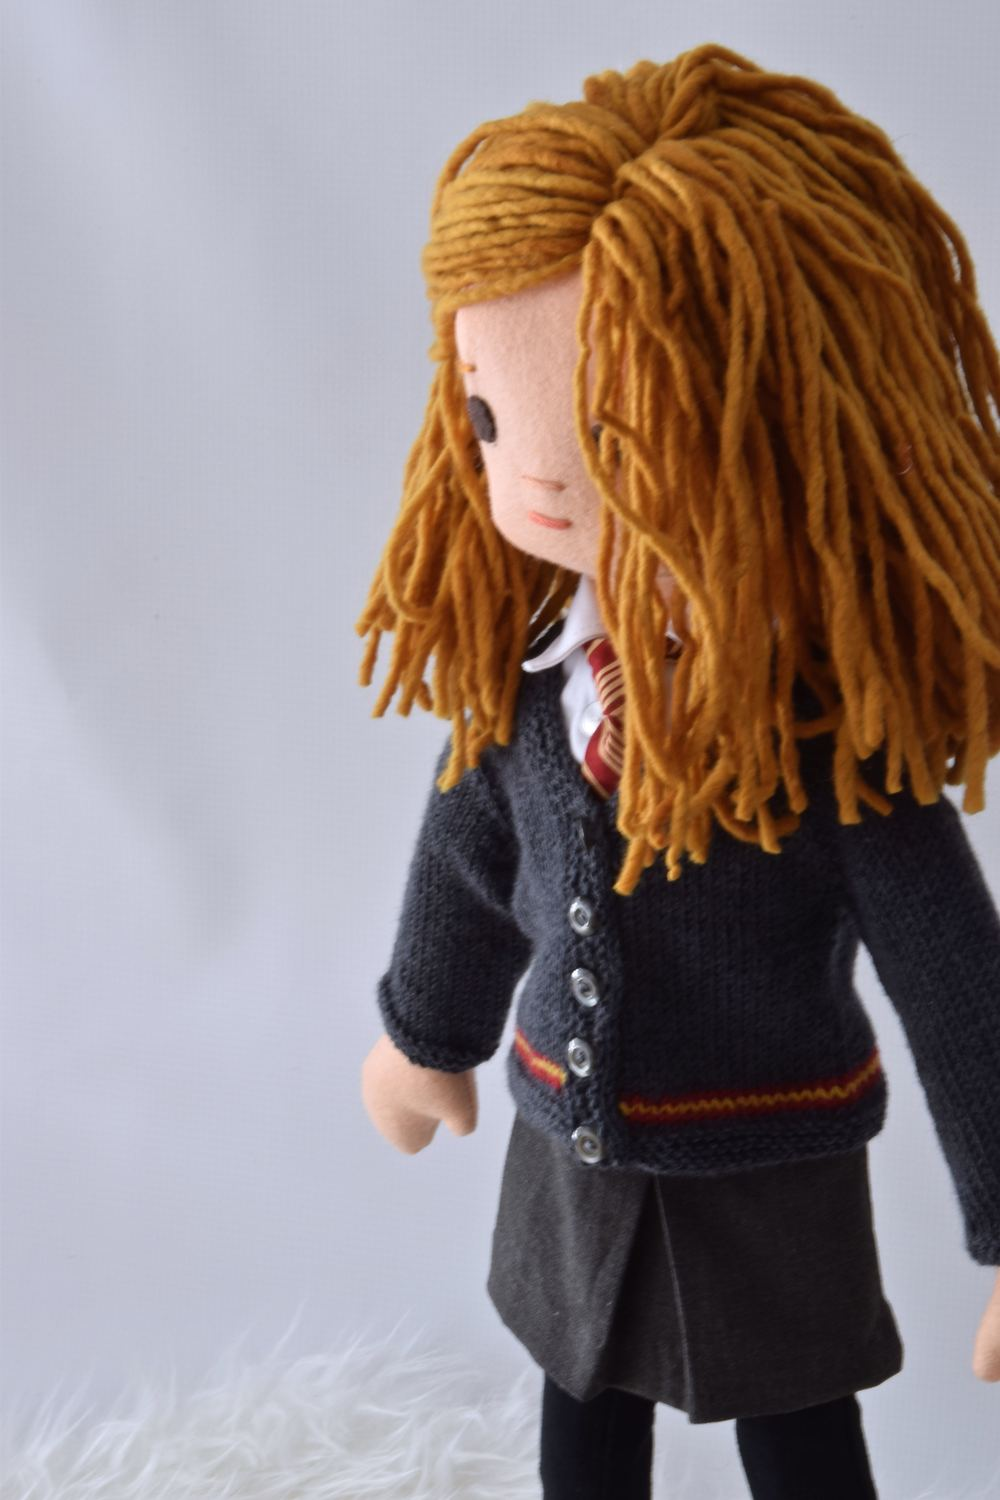 Harry Potter's Hermione Granger doll